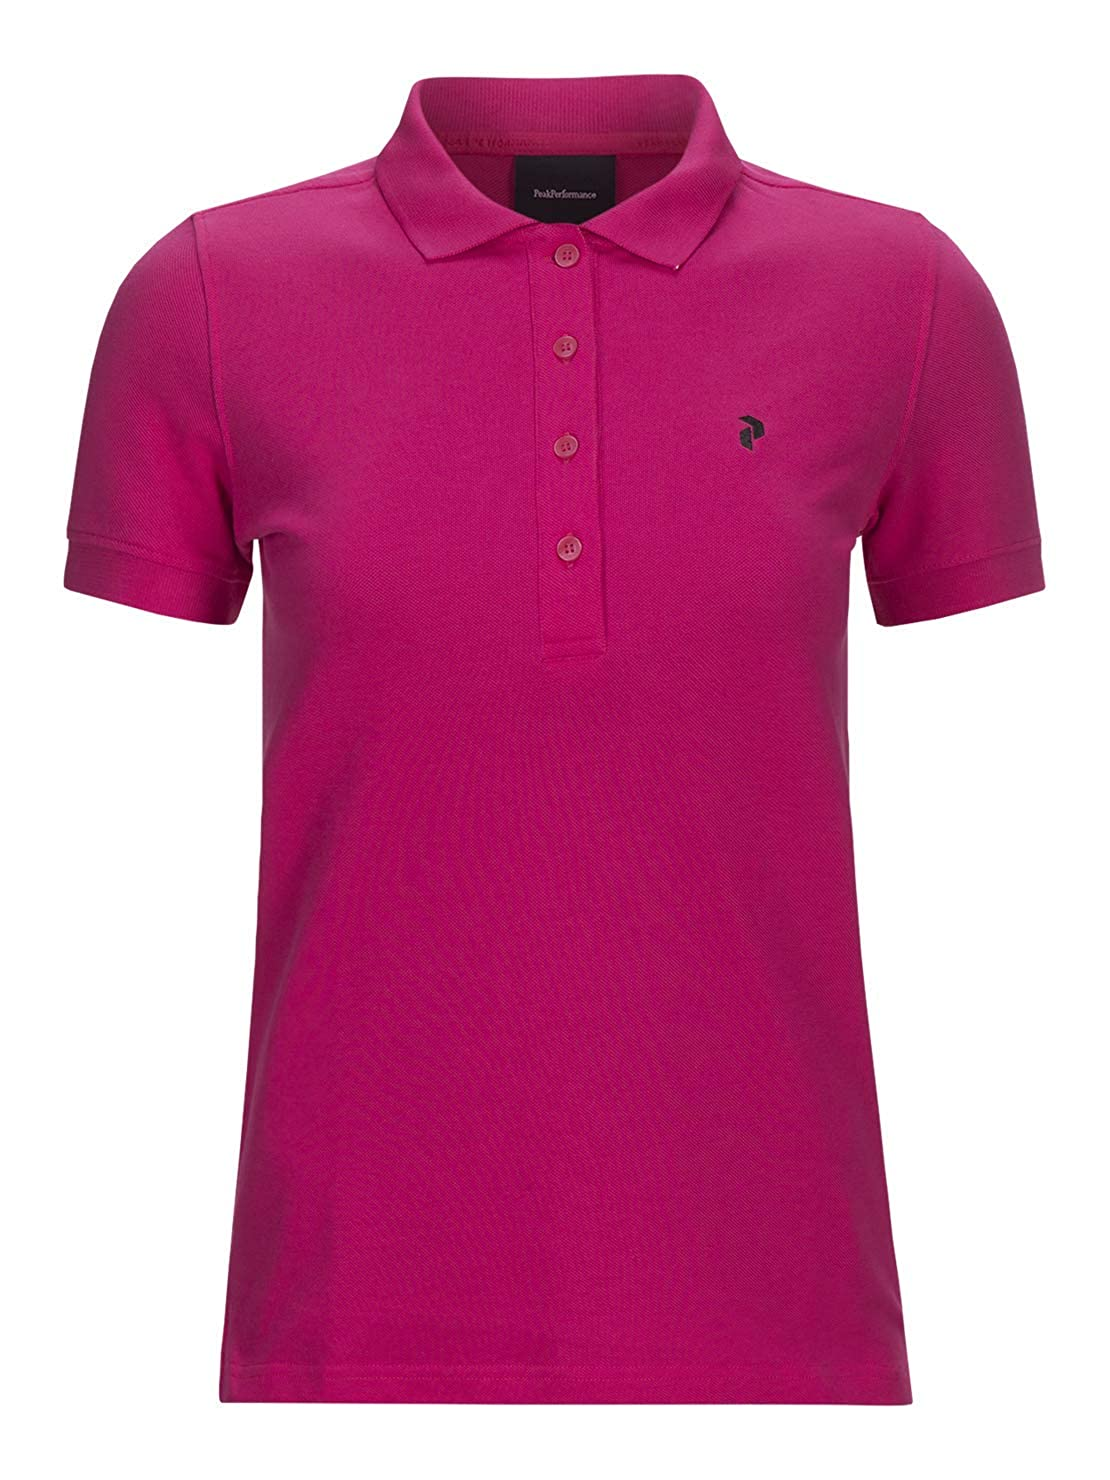 PEAK PERFORMANCE W Classic - Polo de golf, color rosa, Unisex ...